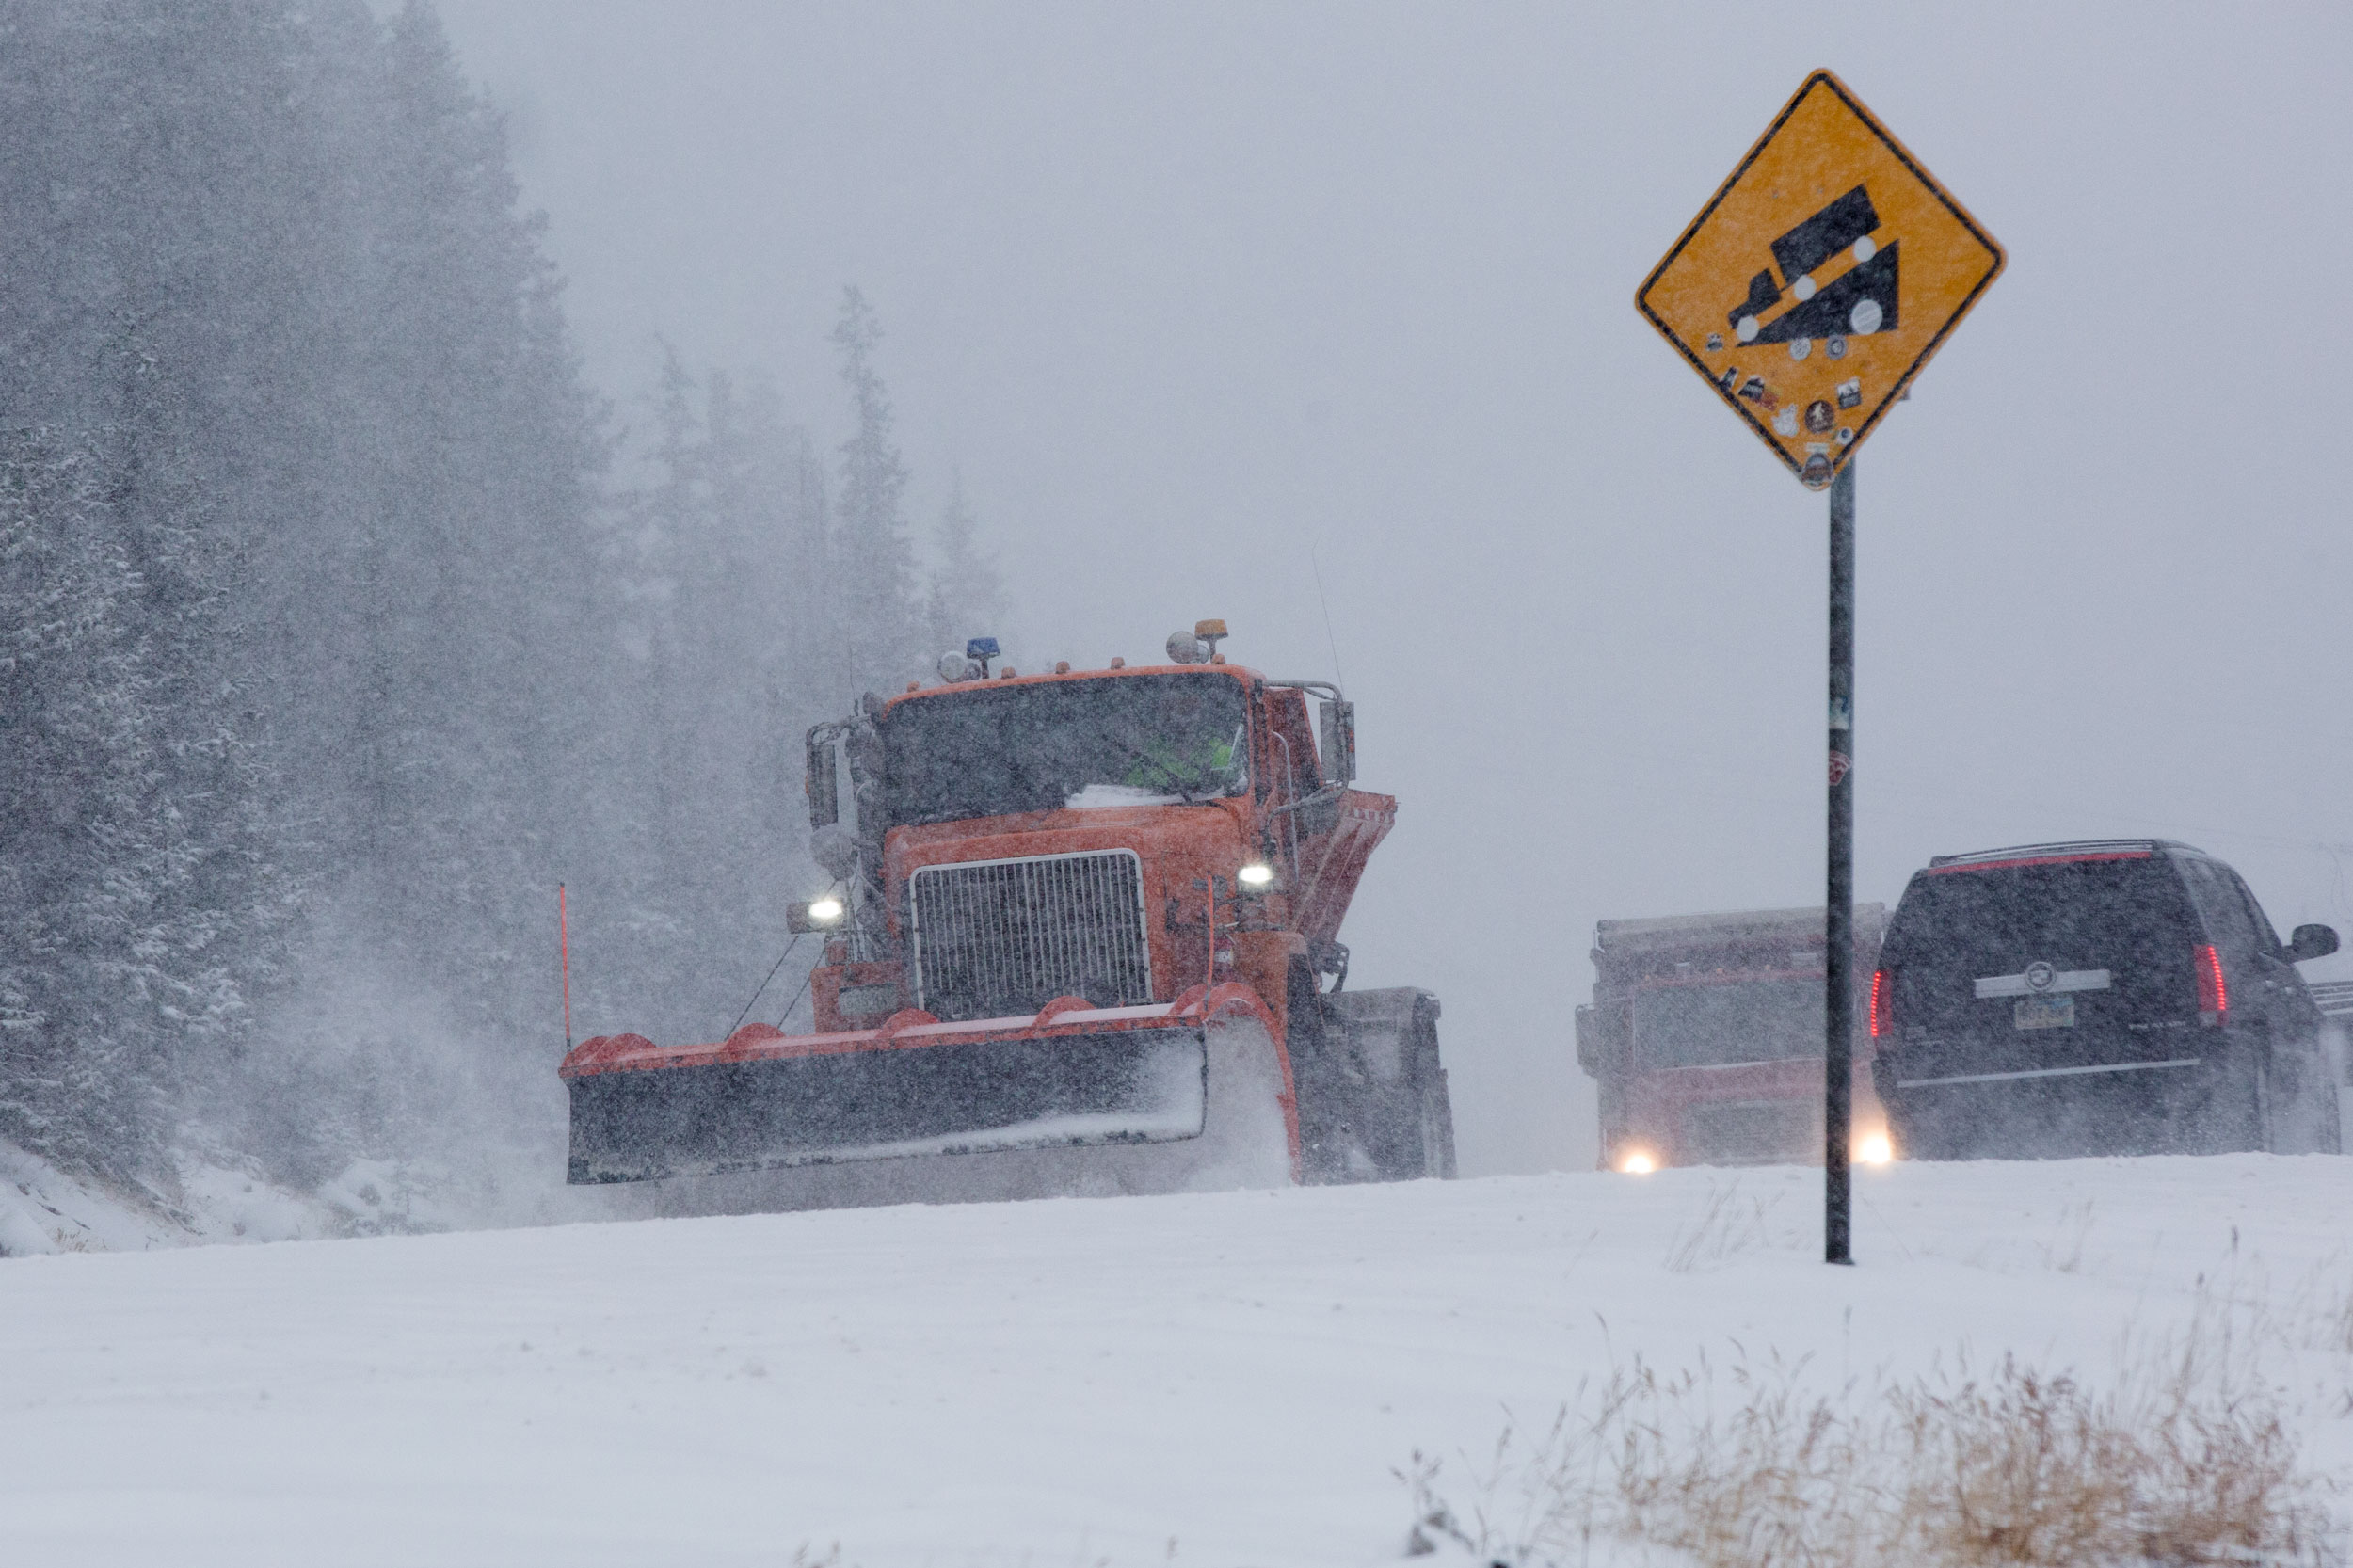 A CDOT snowplow makes its way over Hoosier Pass on Hwy. 9 south of Breckenridge Nov. 20 2019.